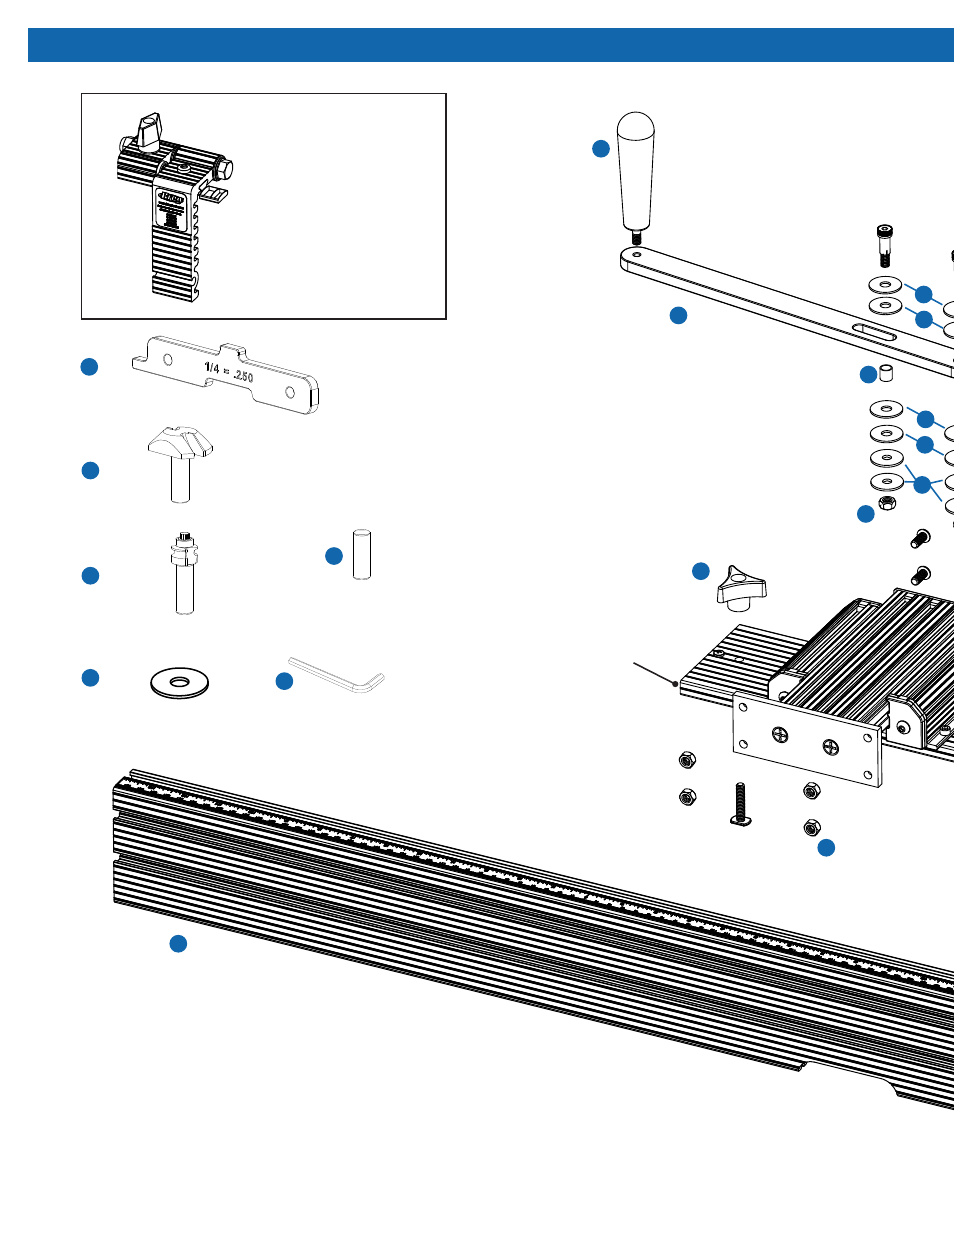 Beaded face-frame fence exploded parts diagram | Kreg PRS1200 ...